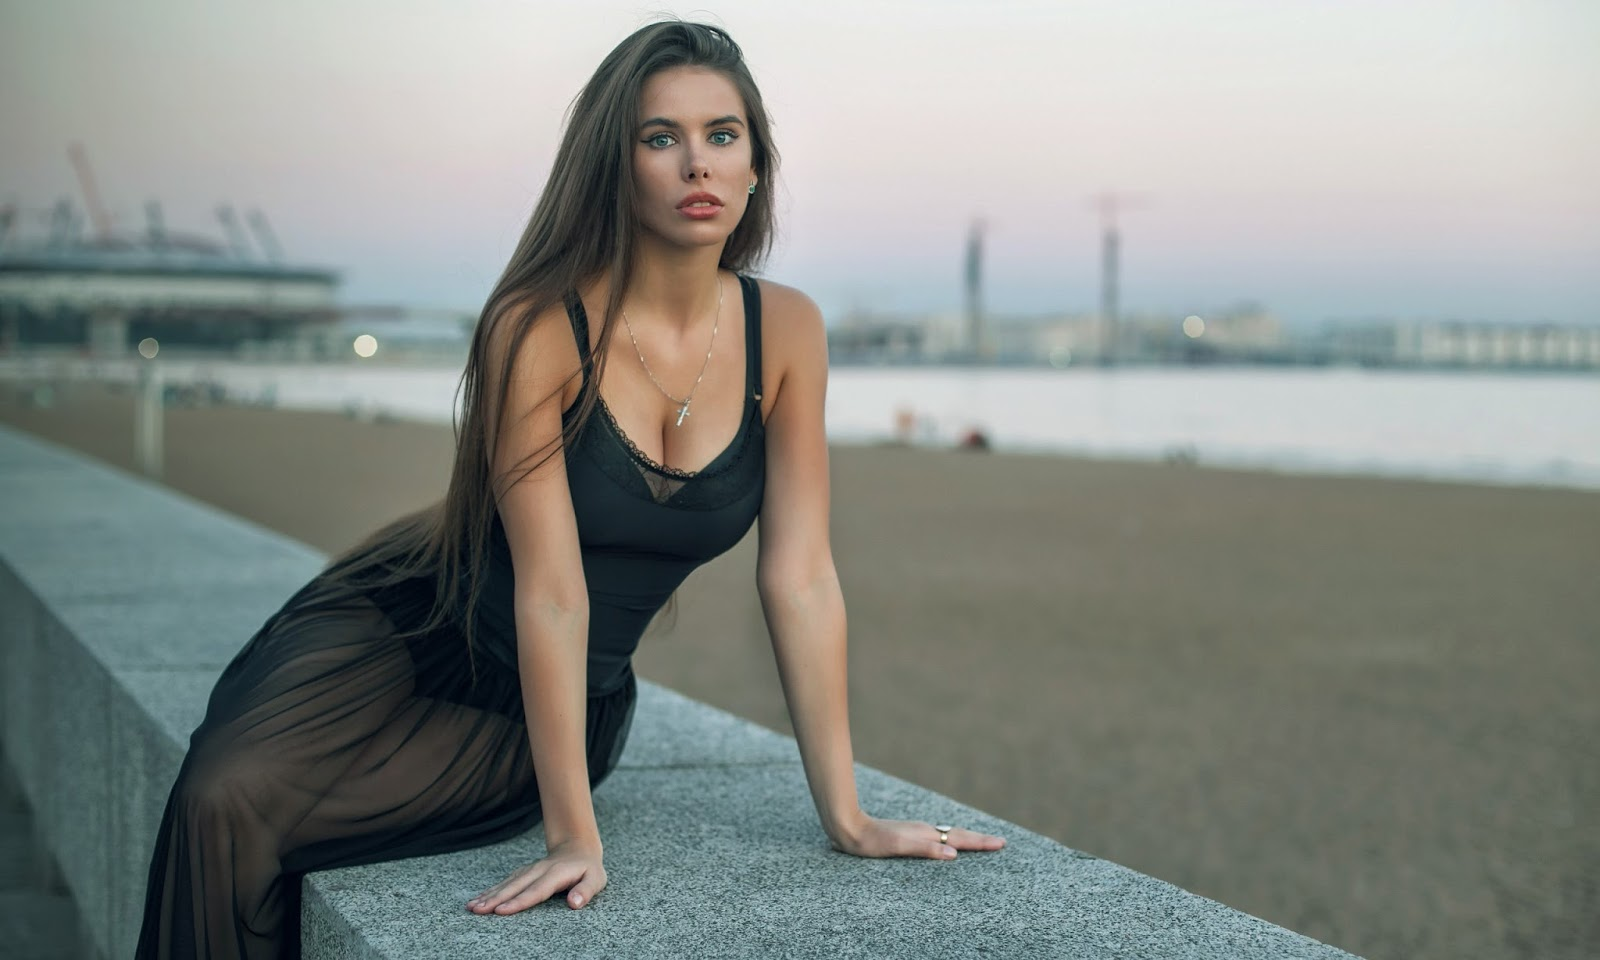 eva buddhist single women About eva@adarmygroup  while it can be exciting to have beautiful and available women wanting to meet you, it  intelligent, adventurous single russian woman.